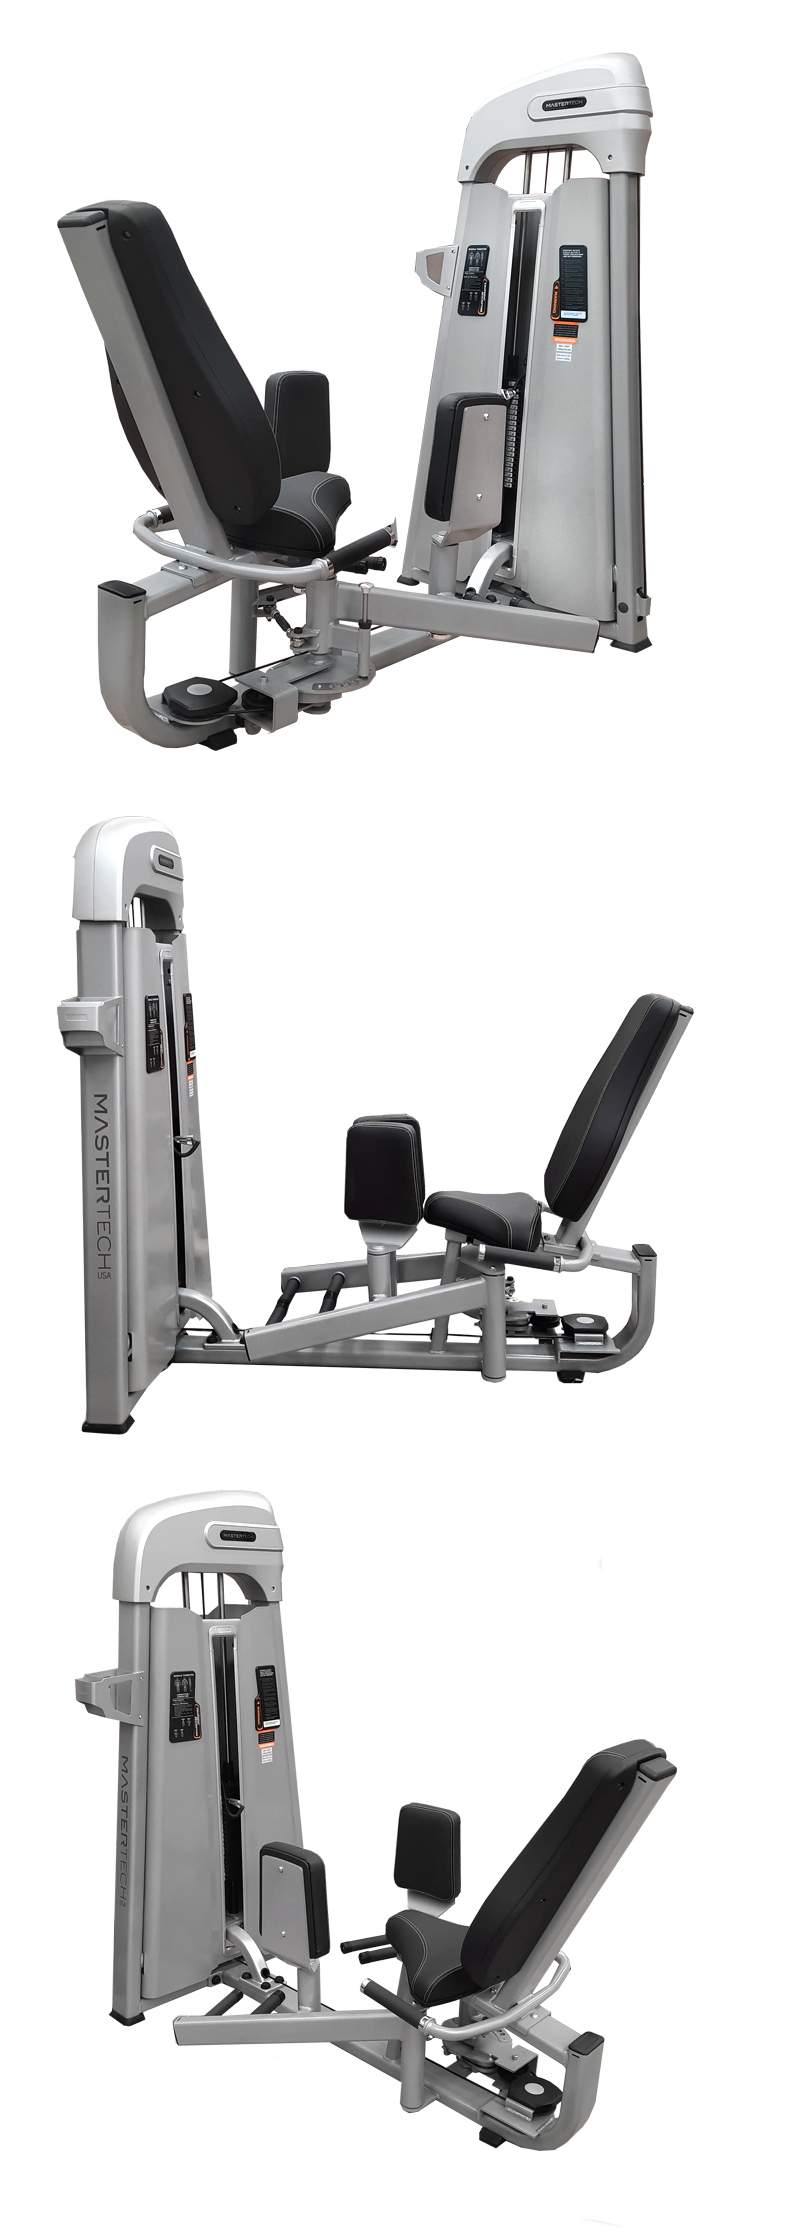 ELIX PRO 1089 - DUAL -  Adductor / Abductor